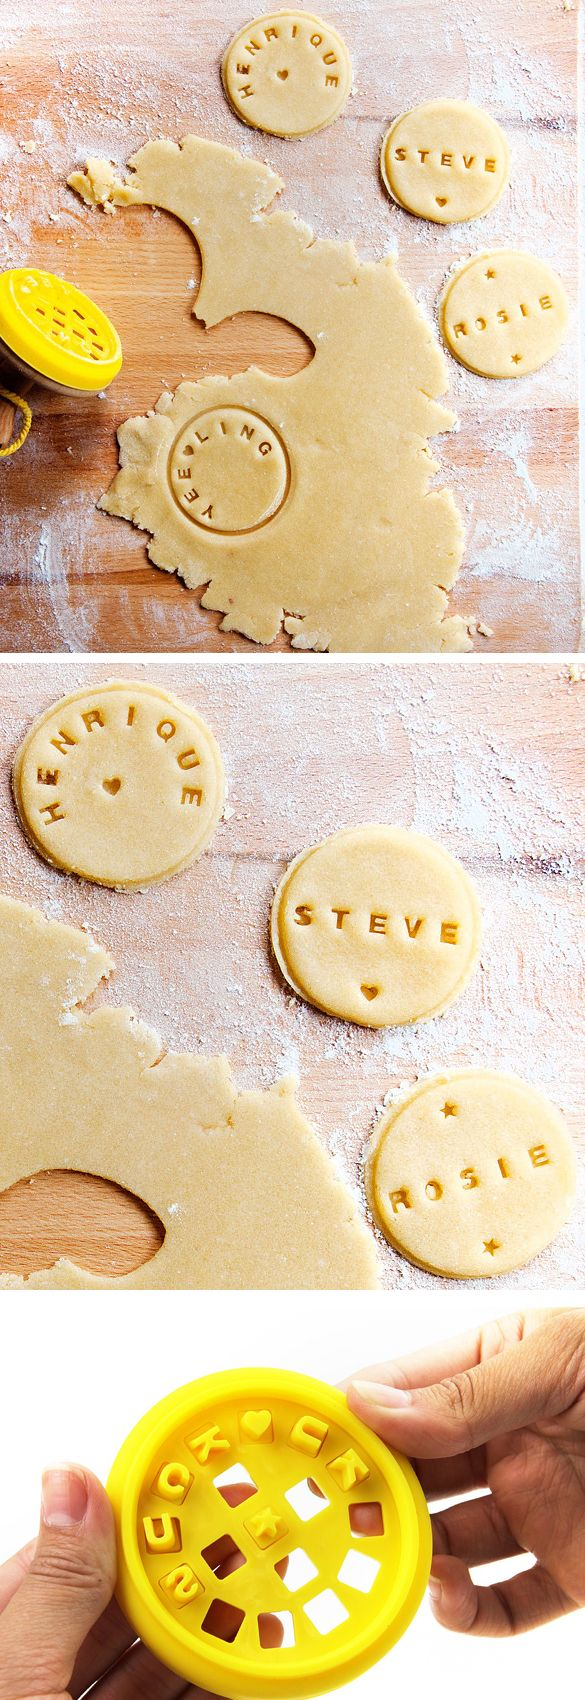 Stamp names on cookies - fun idea for a birthday party